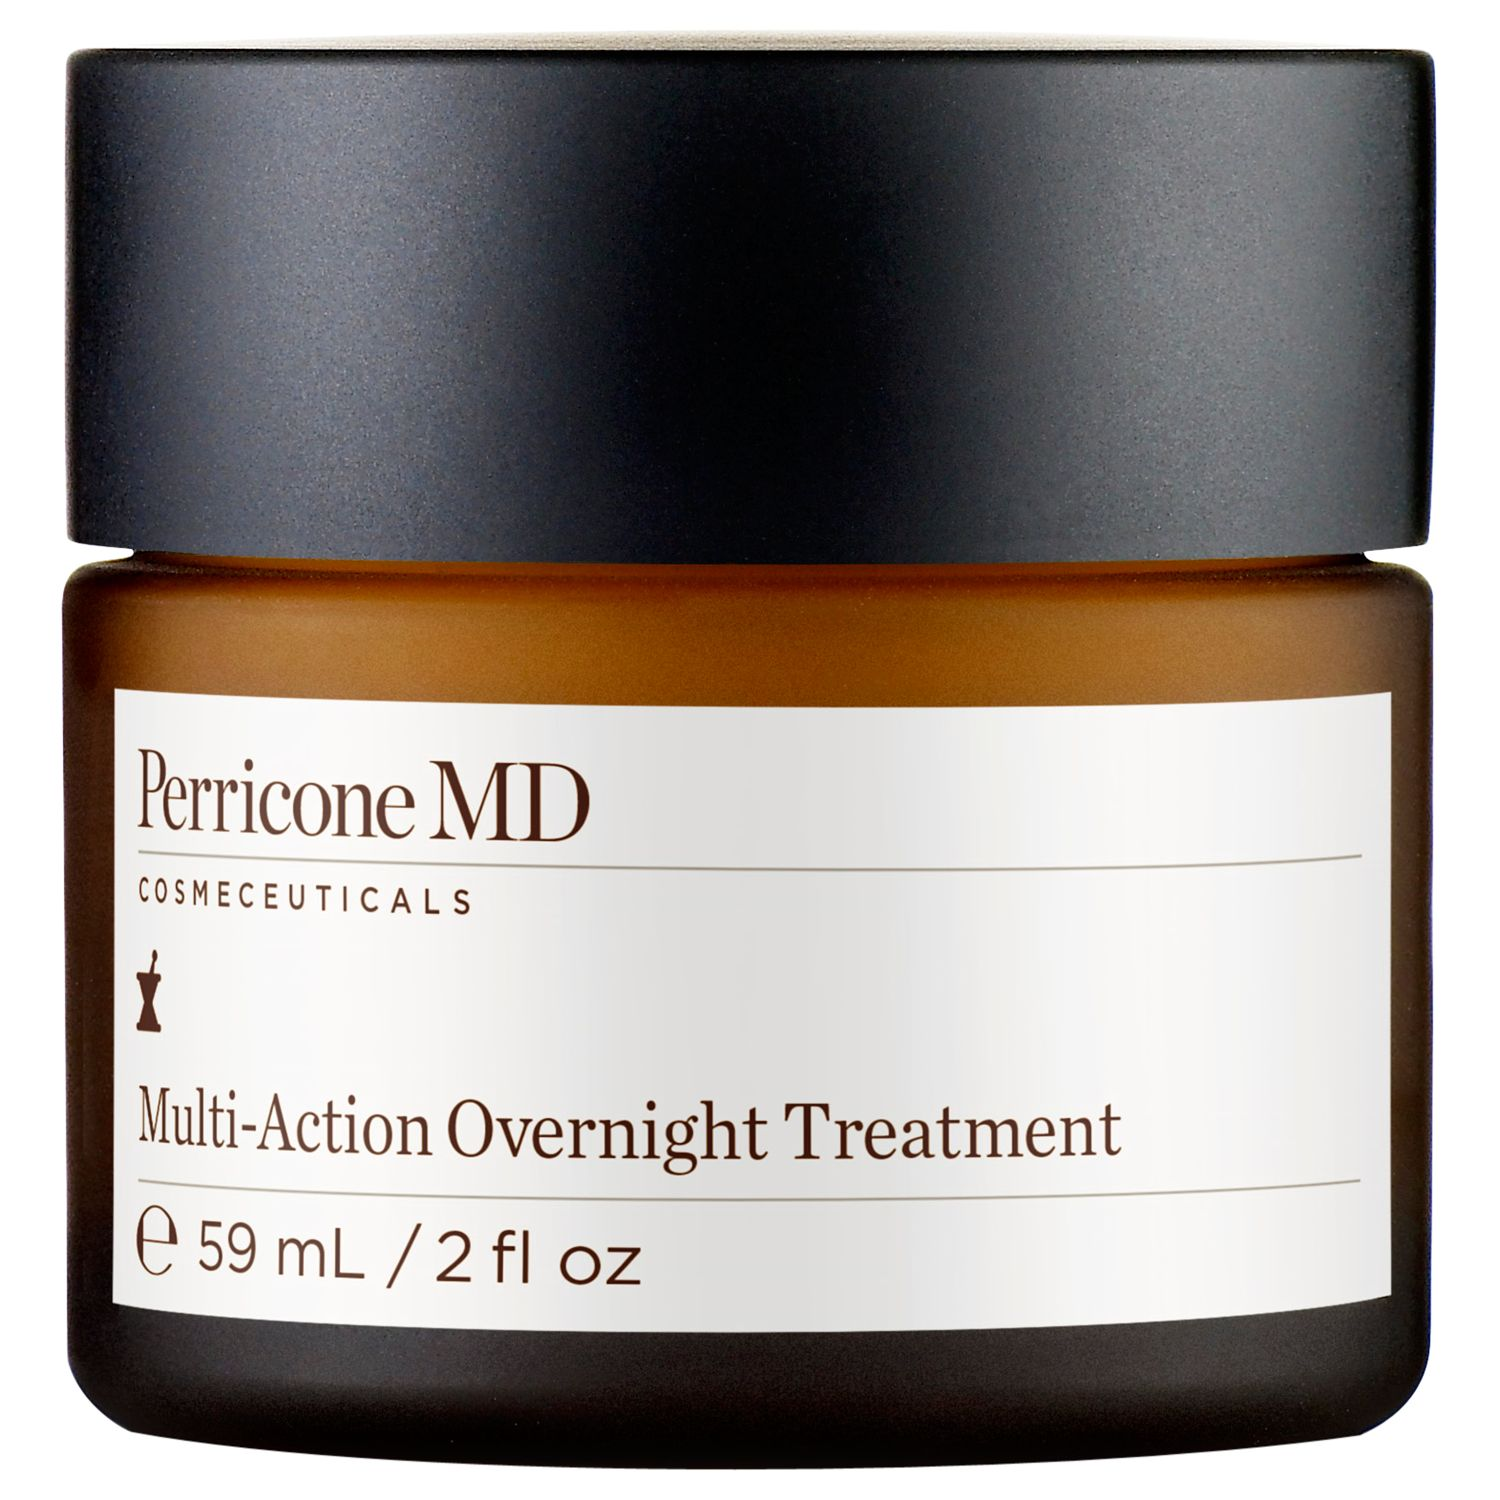 Perricone MD Perricone MD Multi-Action Overnight Treatment, 59ml